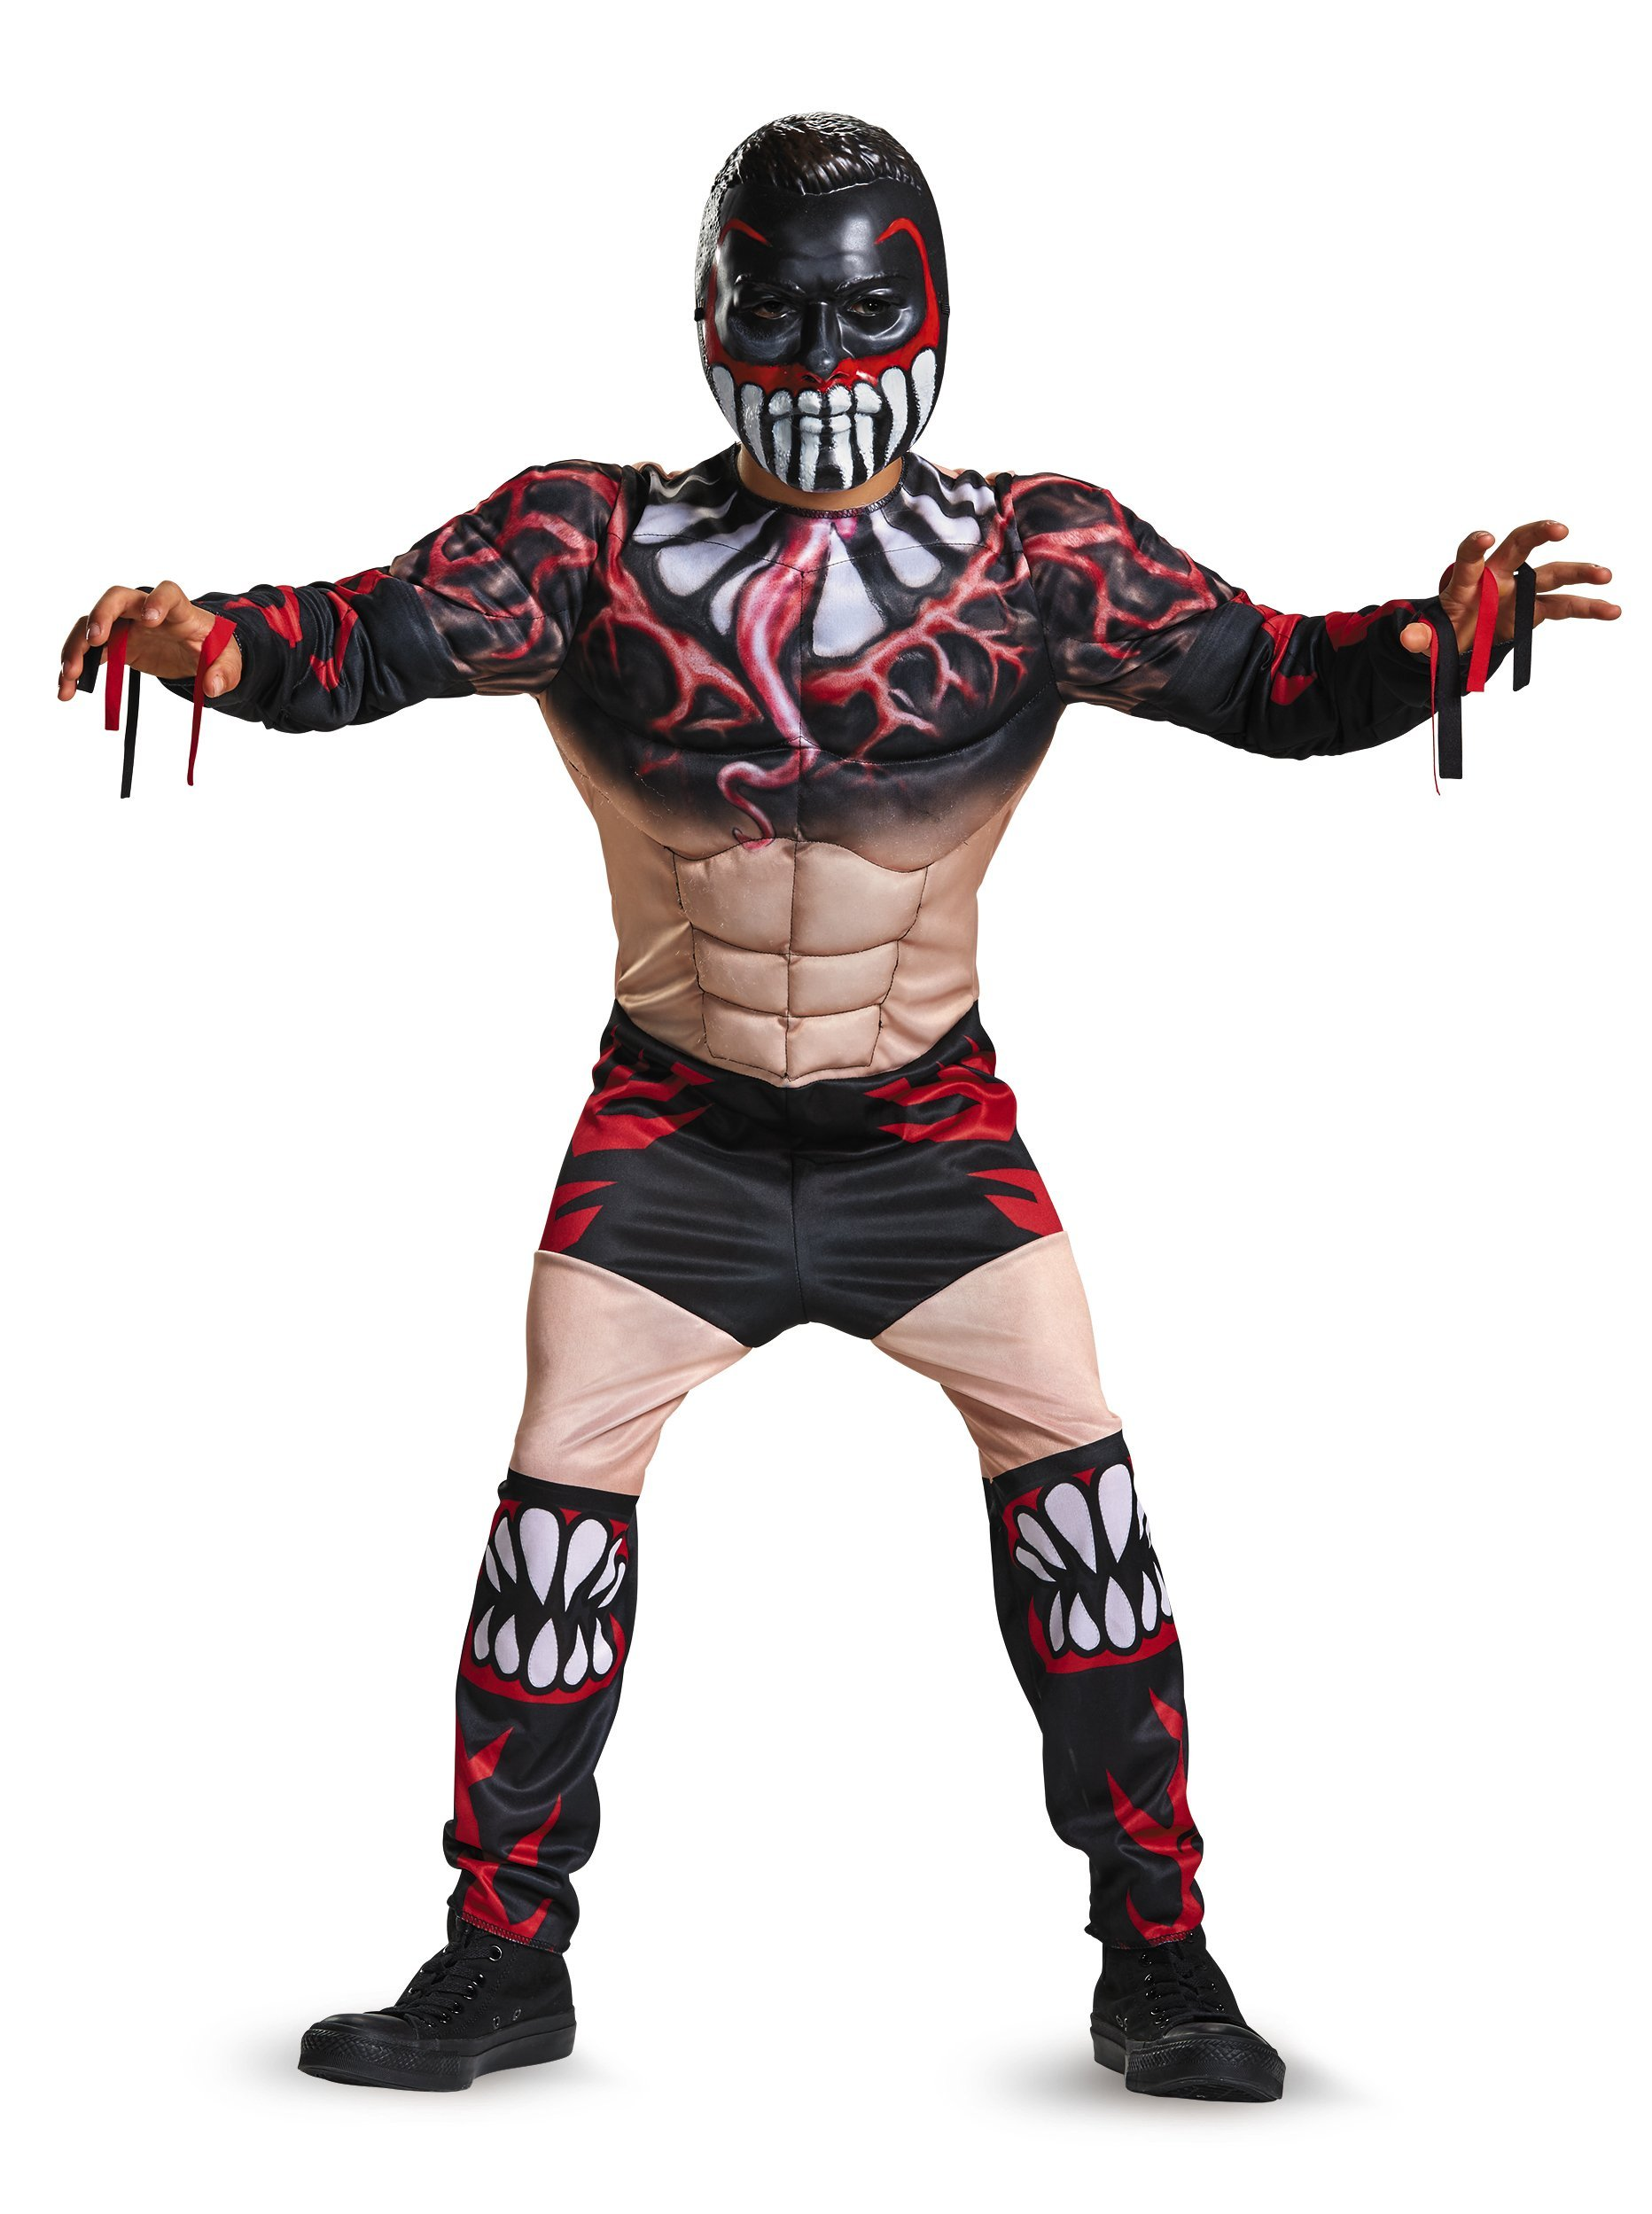 Disguise Fin Balor Classic Muscle WWE Costume, Large/10-12